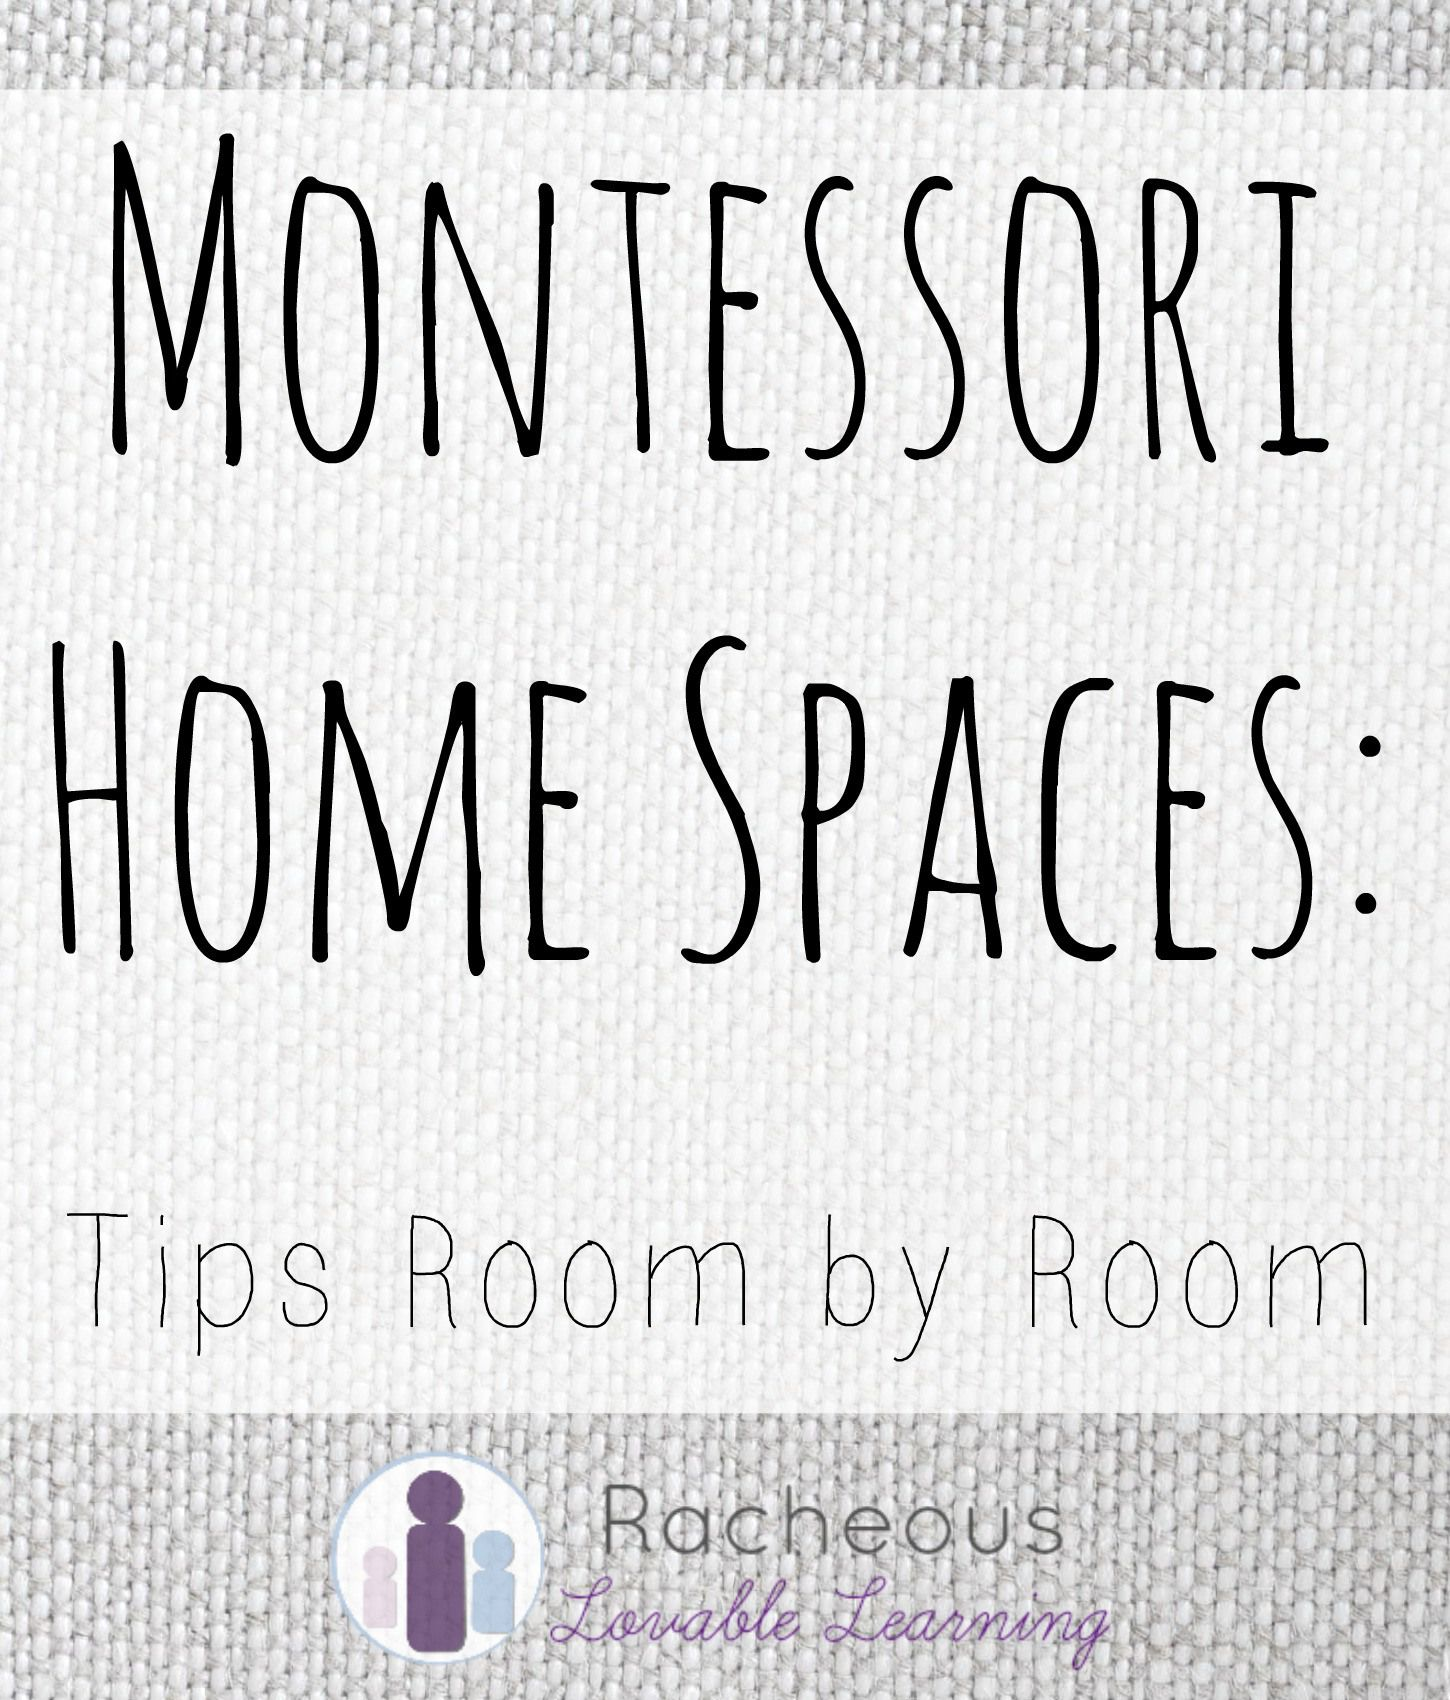 montessori home spaces.. GREAT IDEAS FOR AROUND THE HOUSE ...